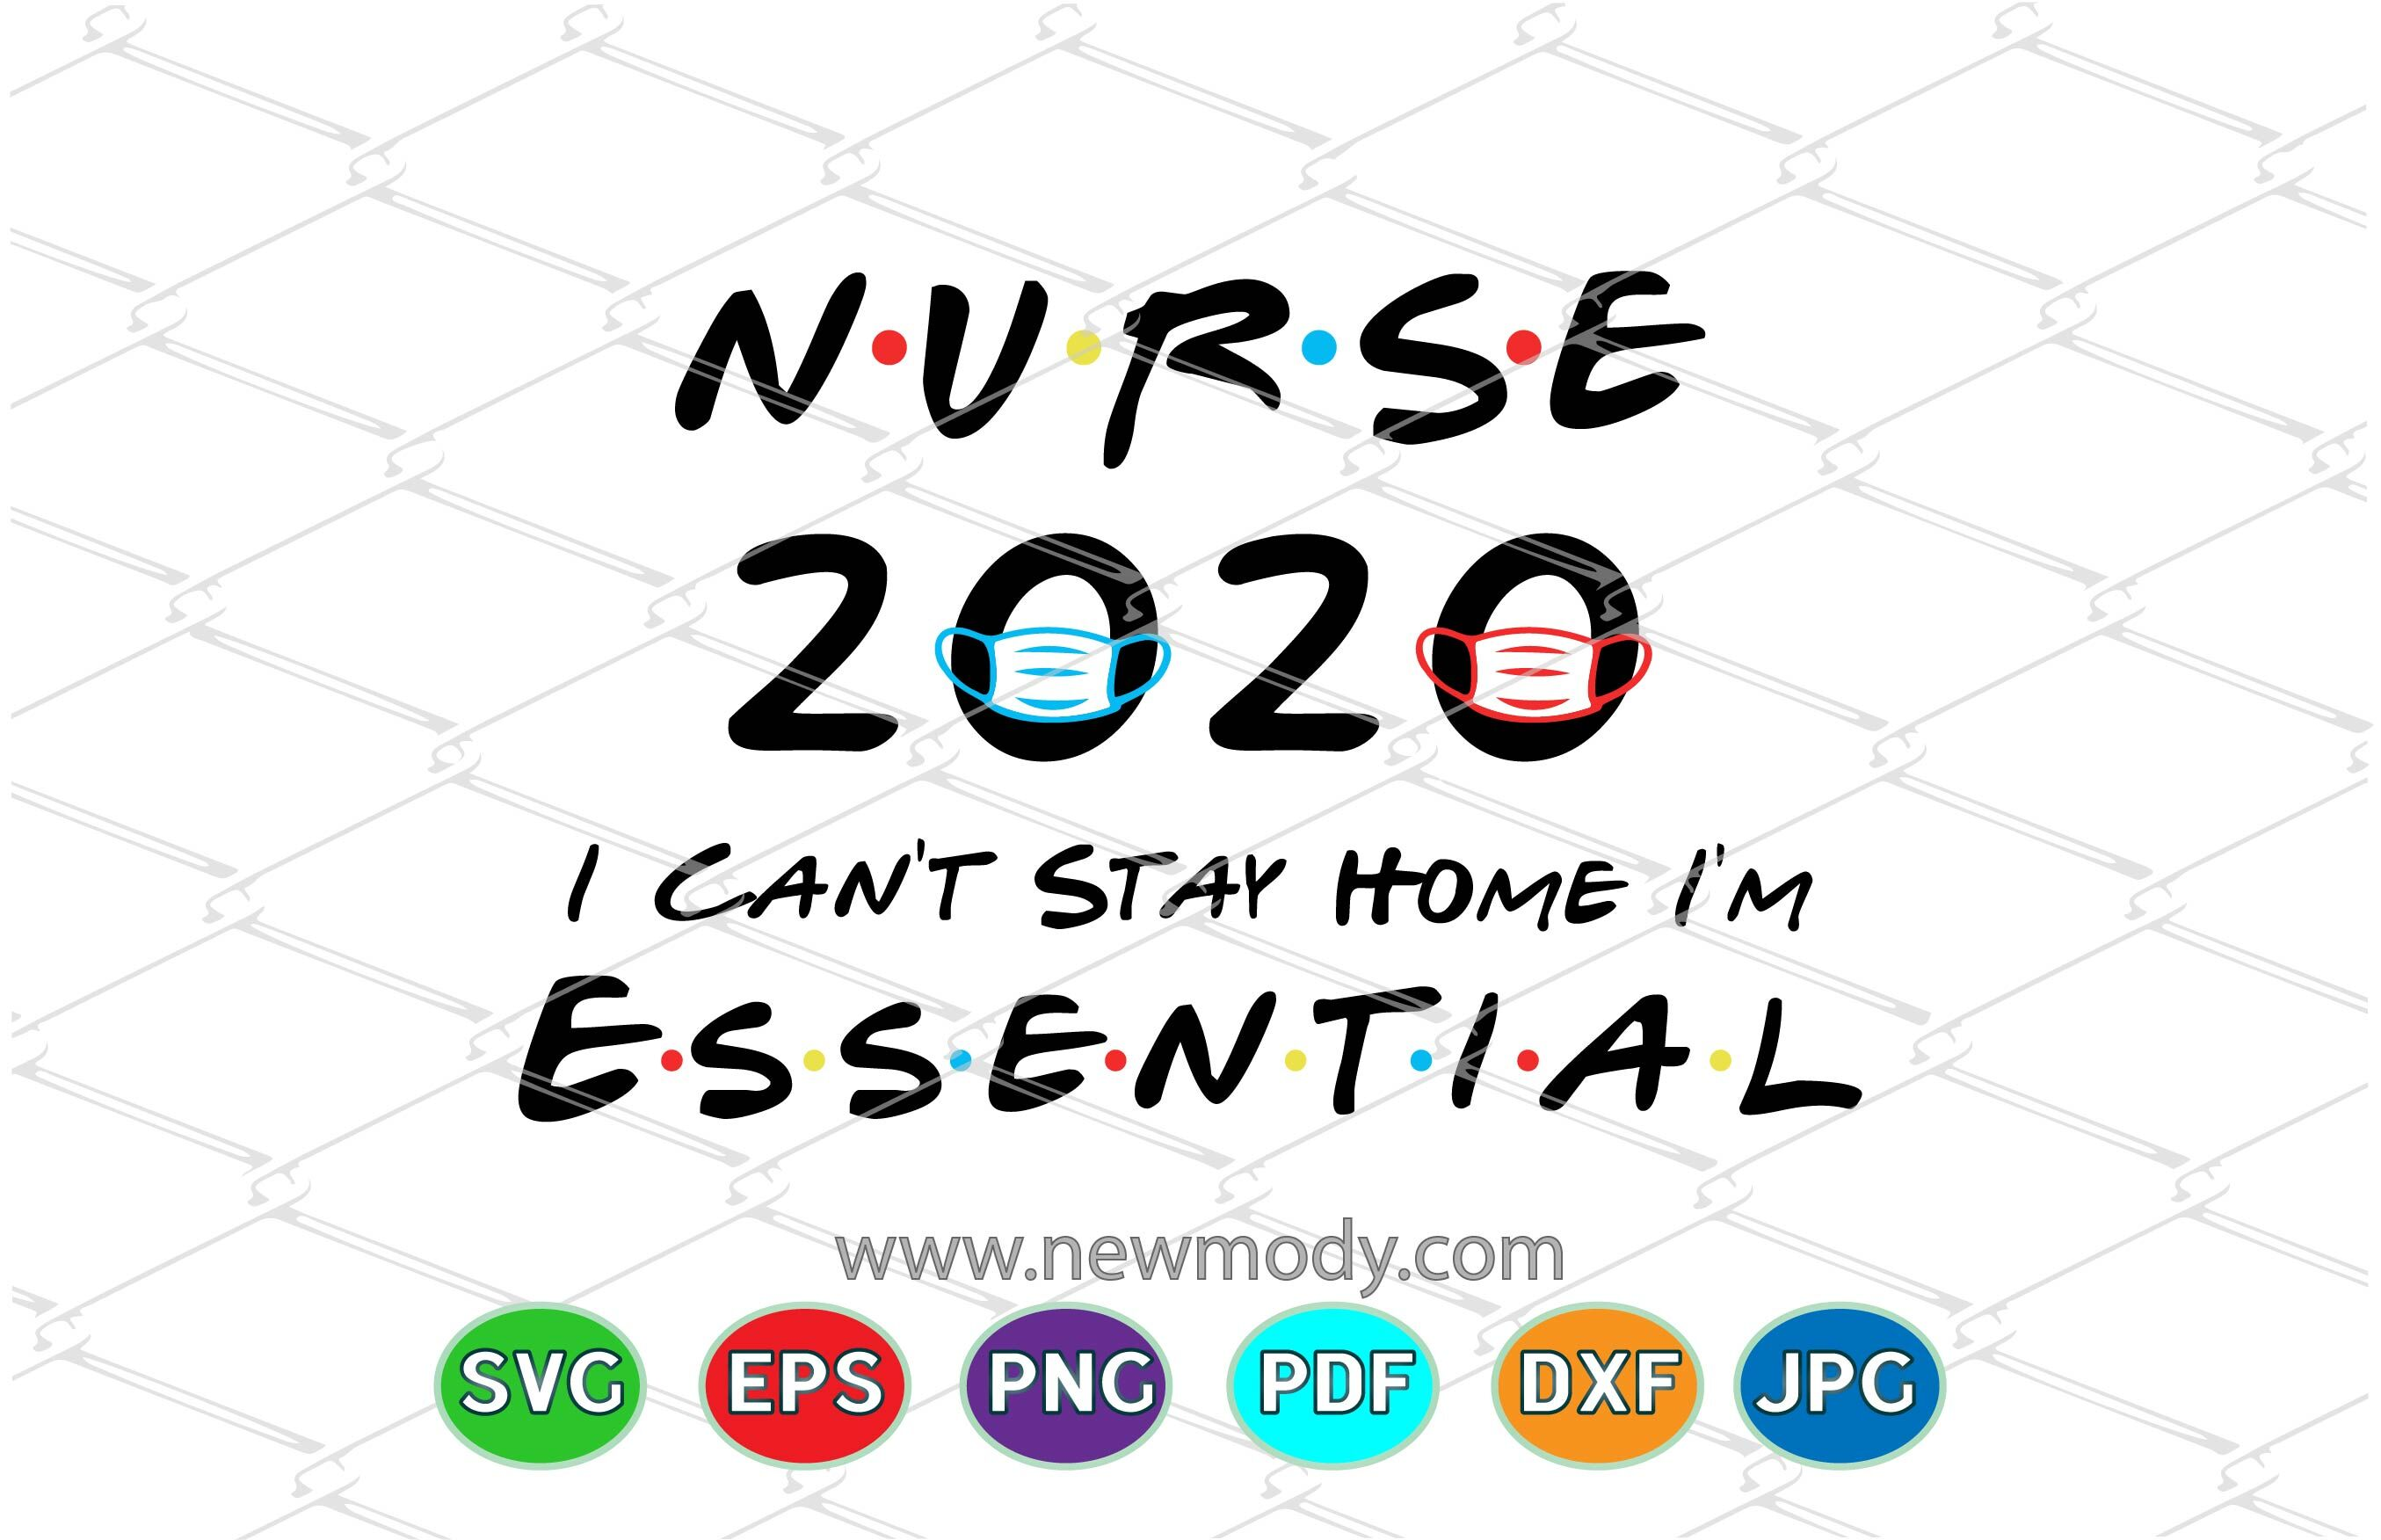 Nure 2020 I Can T Stay Home I M Essential Svg Nurse 2020 Svg By